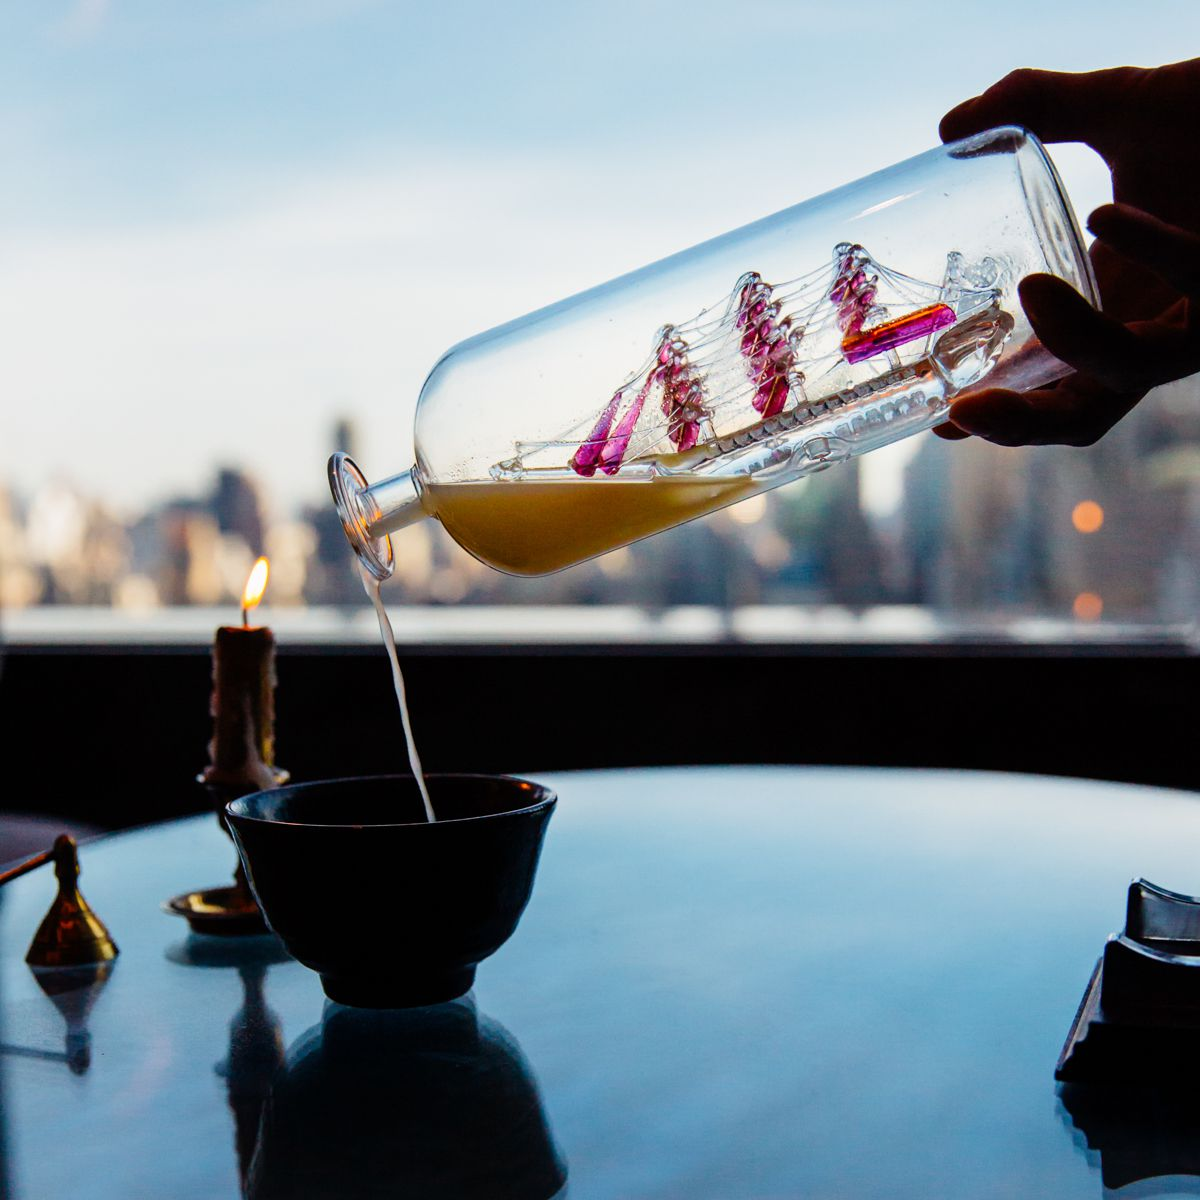 Flavor symbiosis of drinks and dishes with multisensory presentations: Omakase Style Cocktail Bars